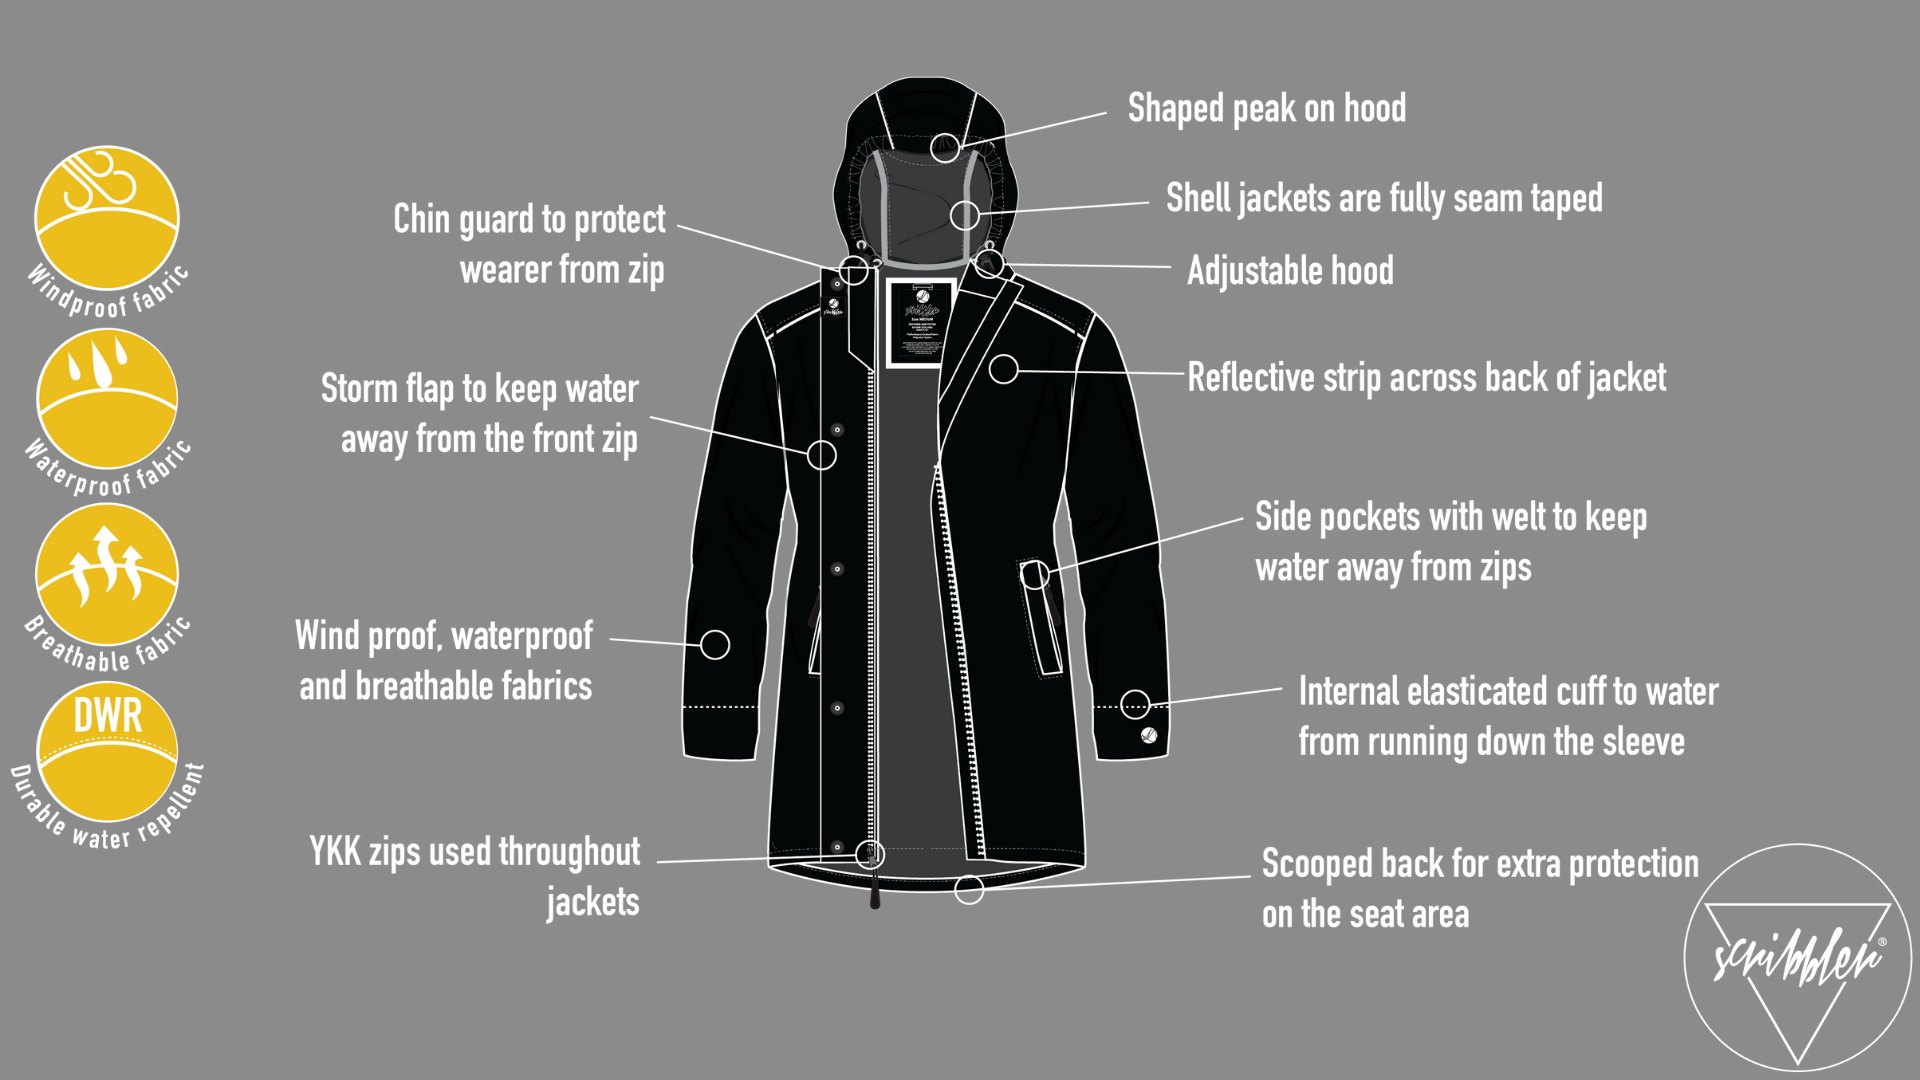 Technical features of Scribbler waterproof rain jackets and raincoats